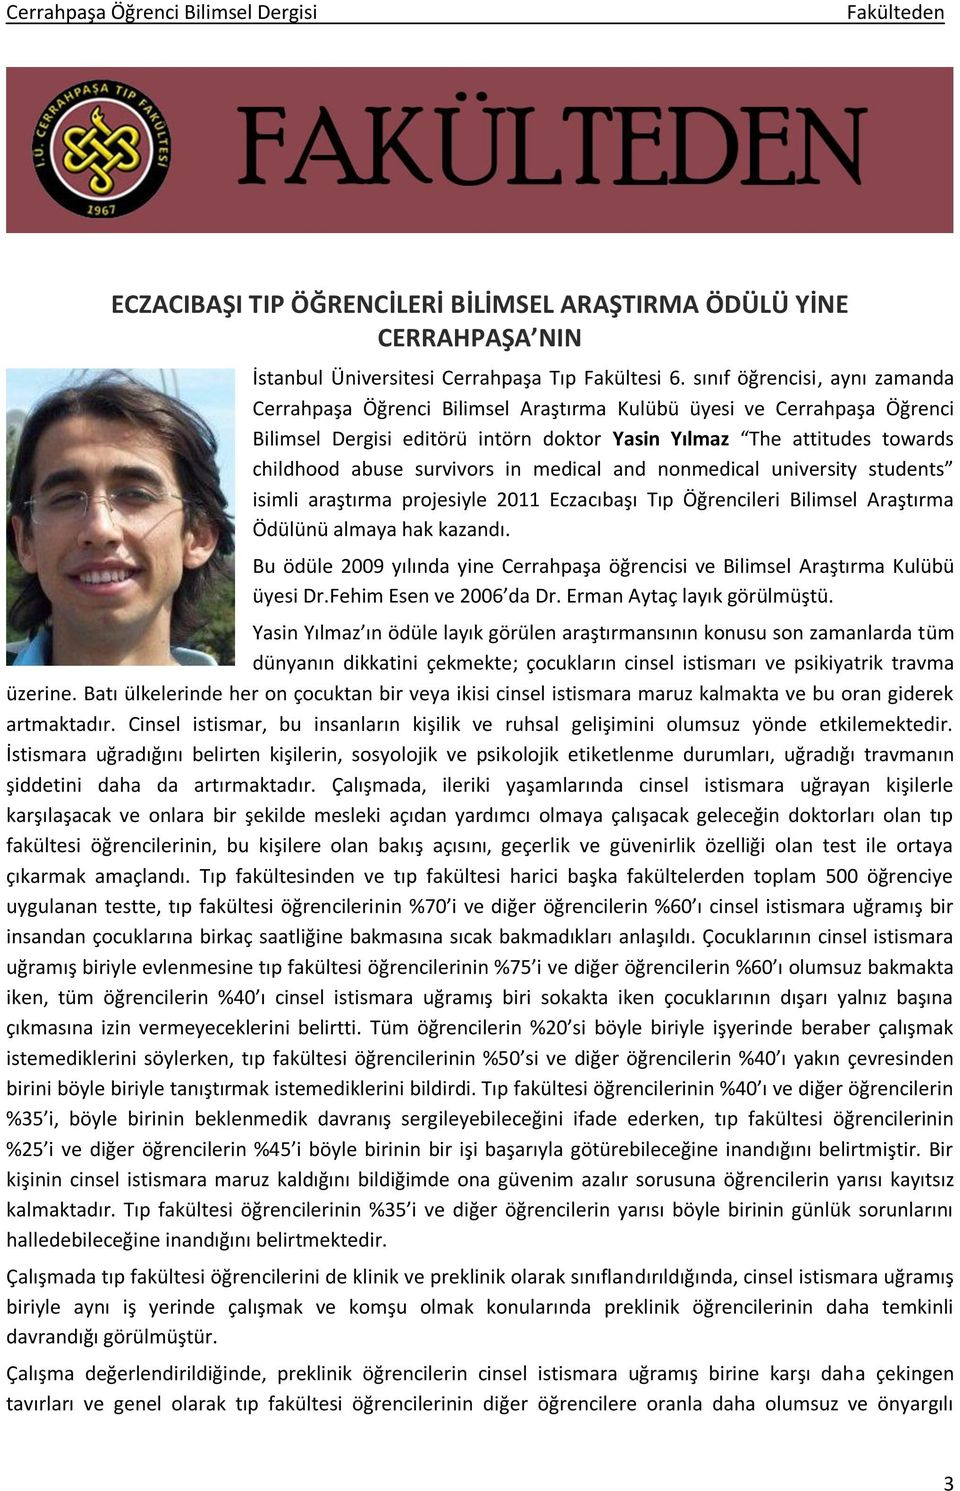 survivors in medical and nonmedical university students isimli araştırma projesiyle 2011 Eczacıbaşı Tıp Öğrencileri Bilimsel Araştırma Ödülünü almaya hak kazandı.